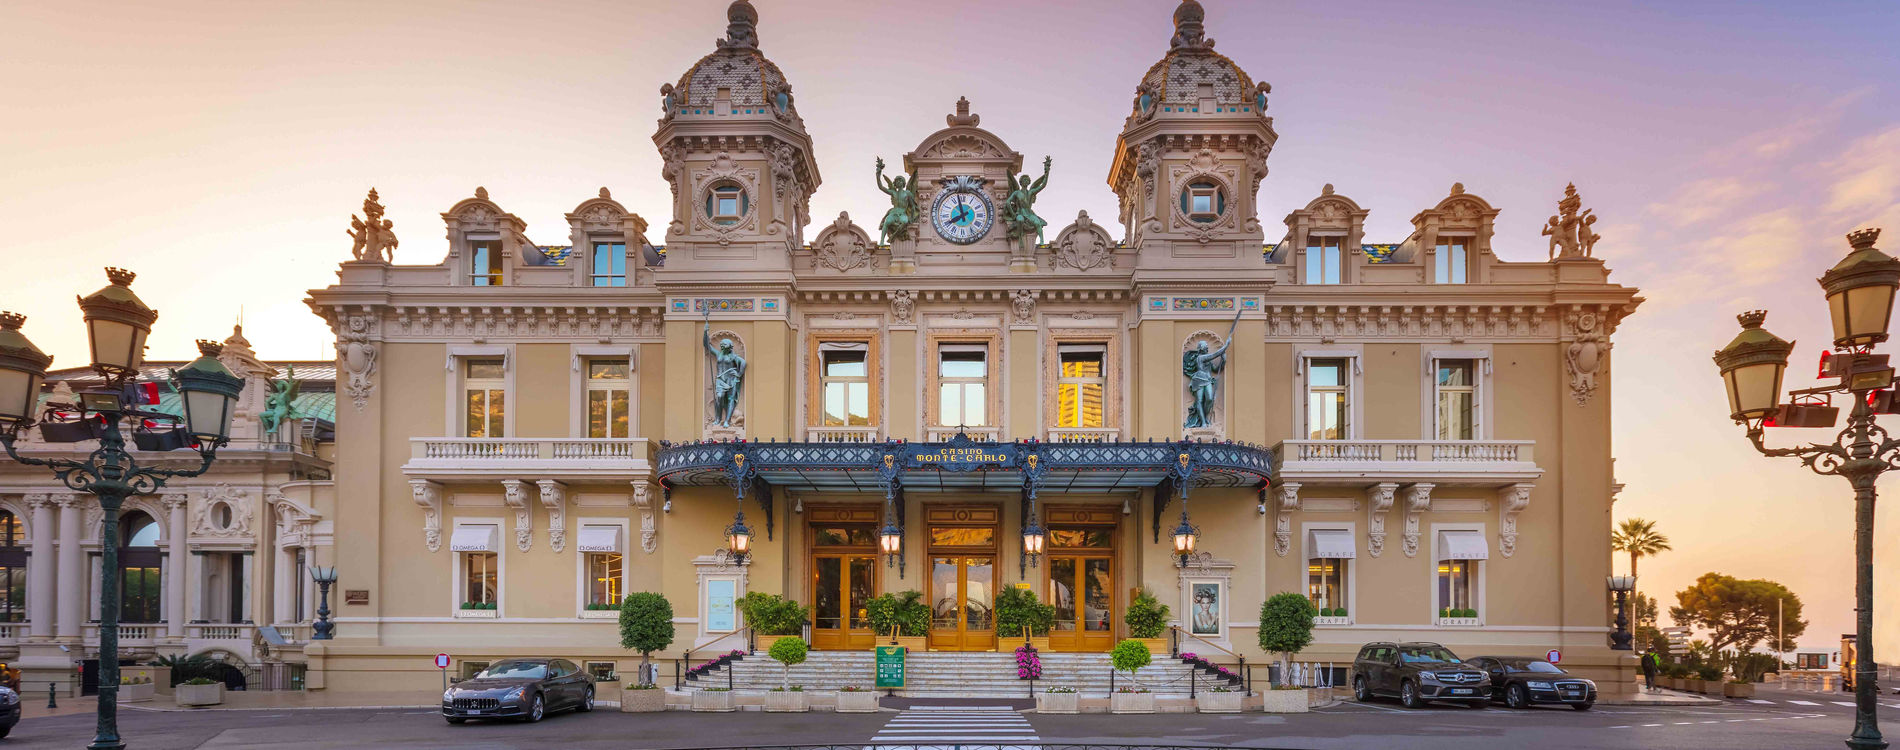 Casino De Monte Carlo >> Prices And Conditions Of Entry Casino De Monte Carlo